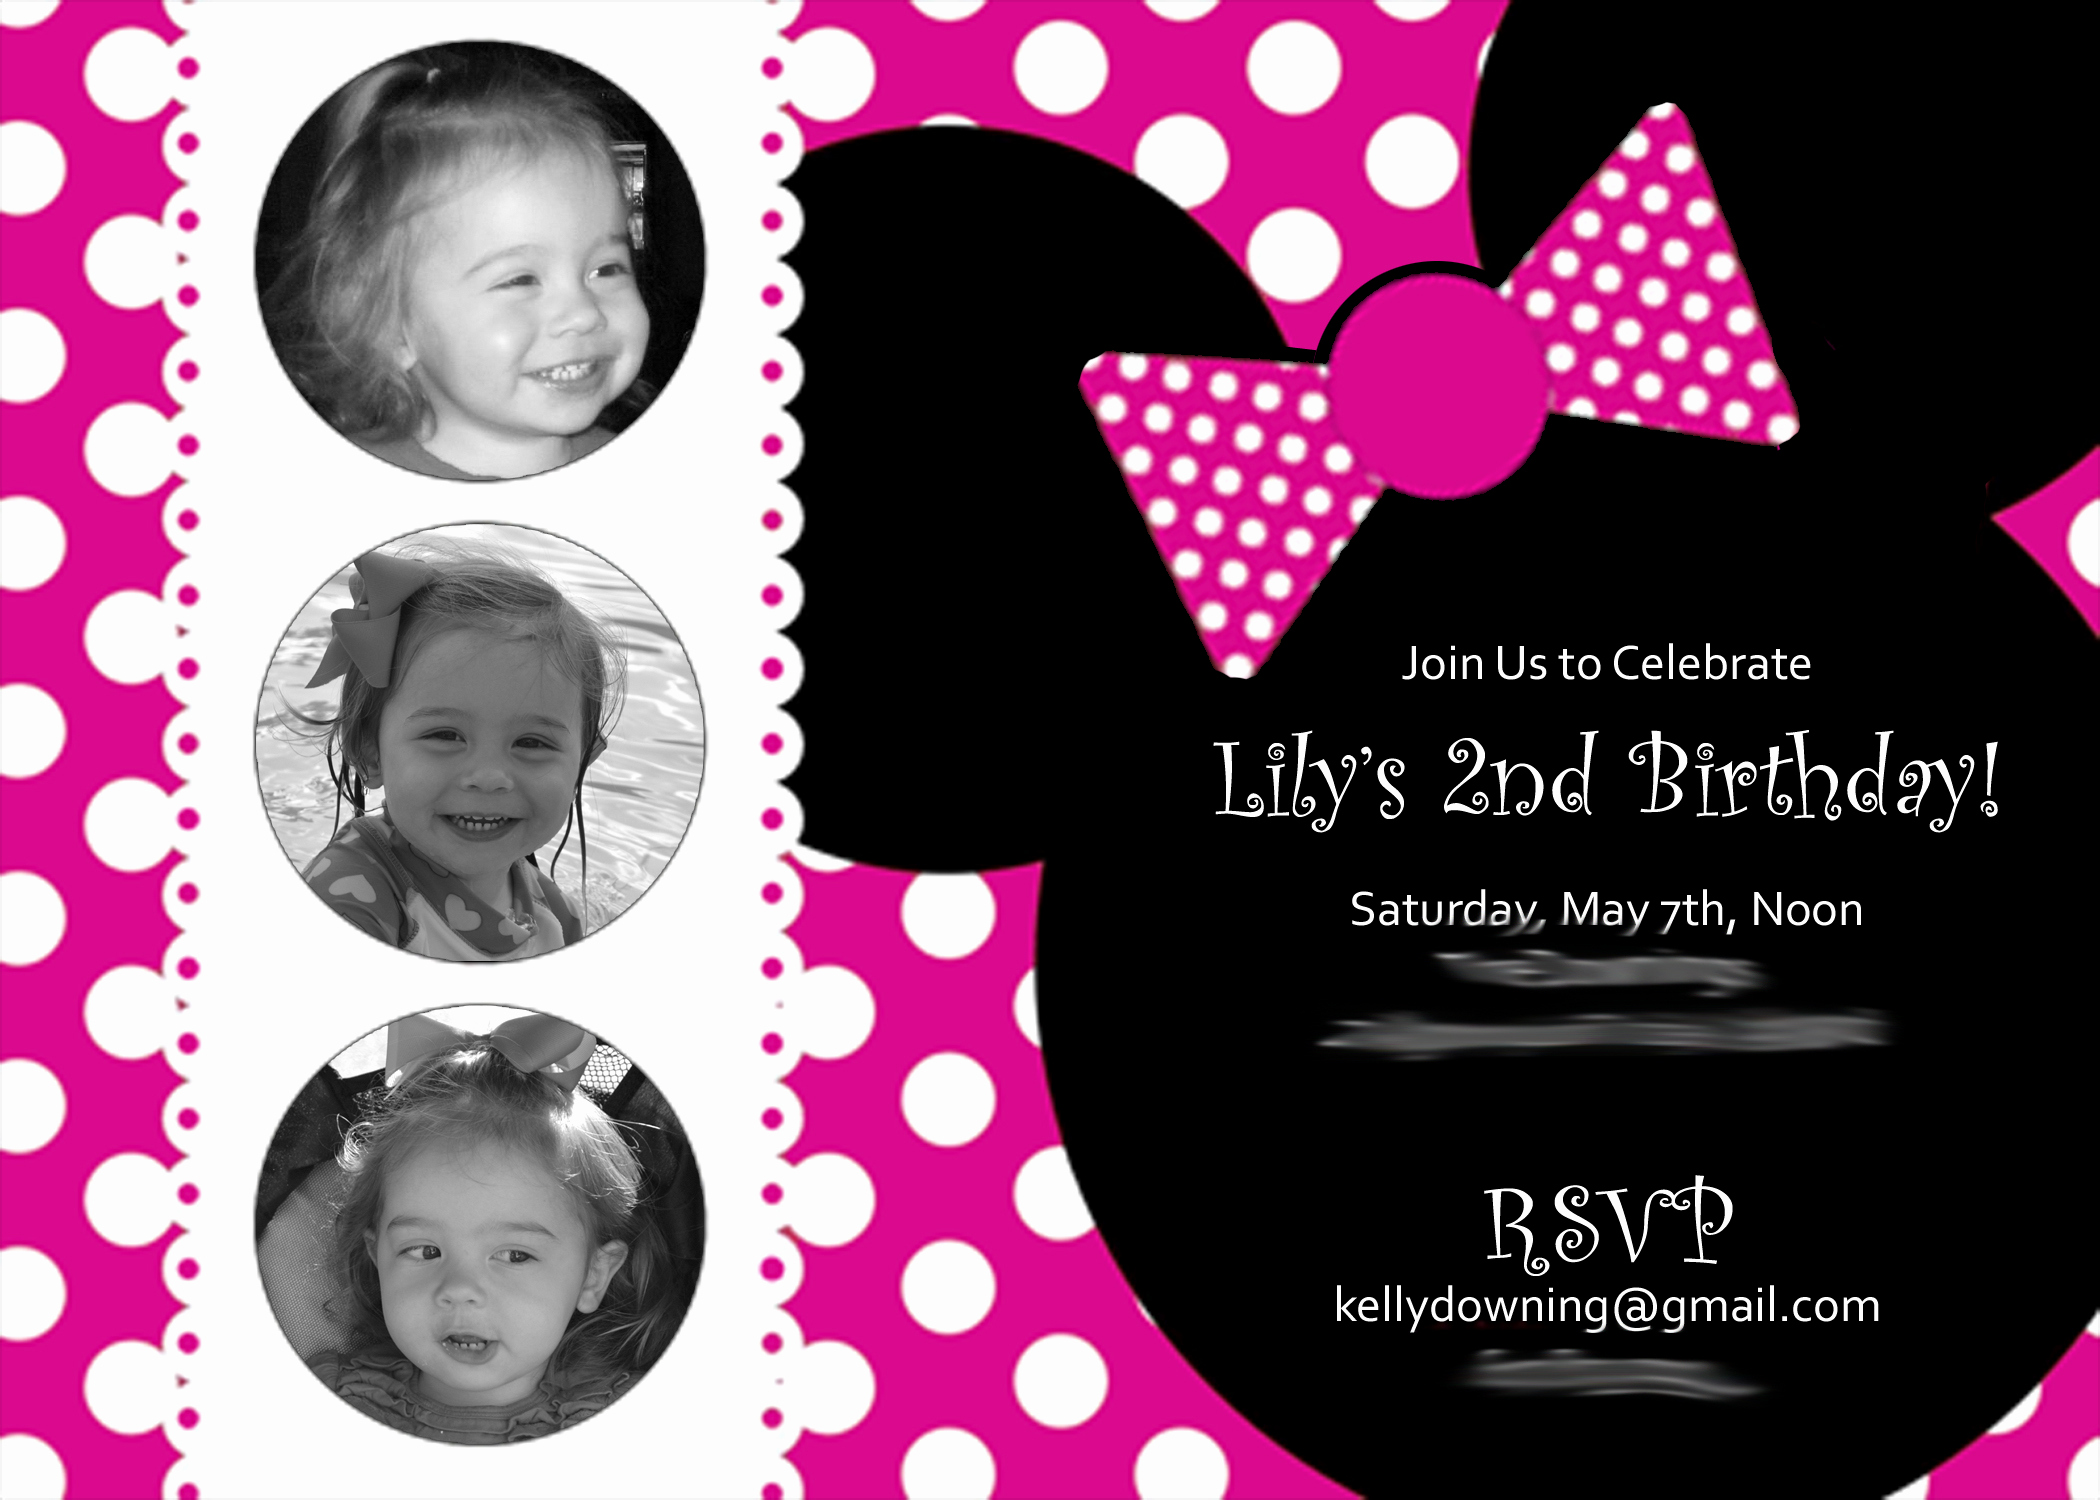 Minnie Mouse Invitation Wording Unique A Two Year's Olds Mini Minnie Birthday Party